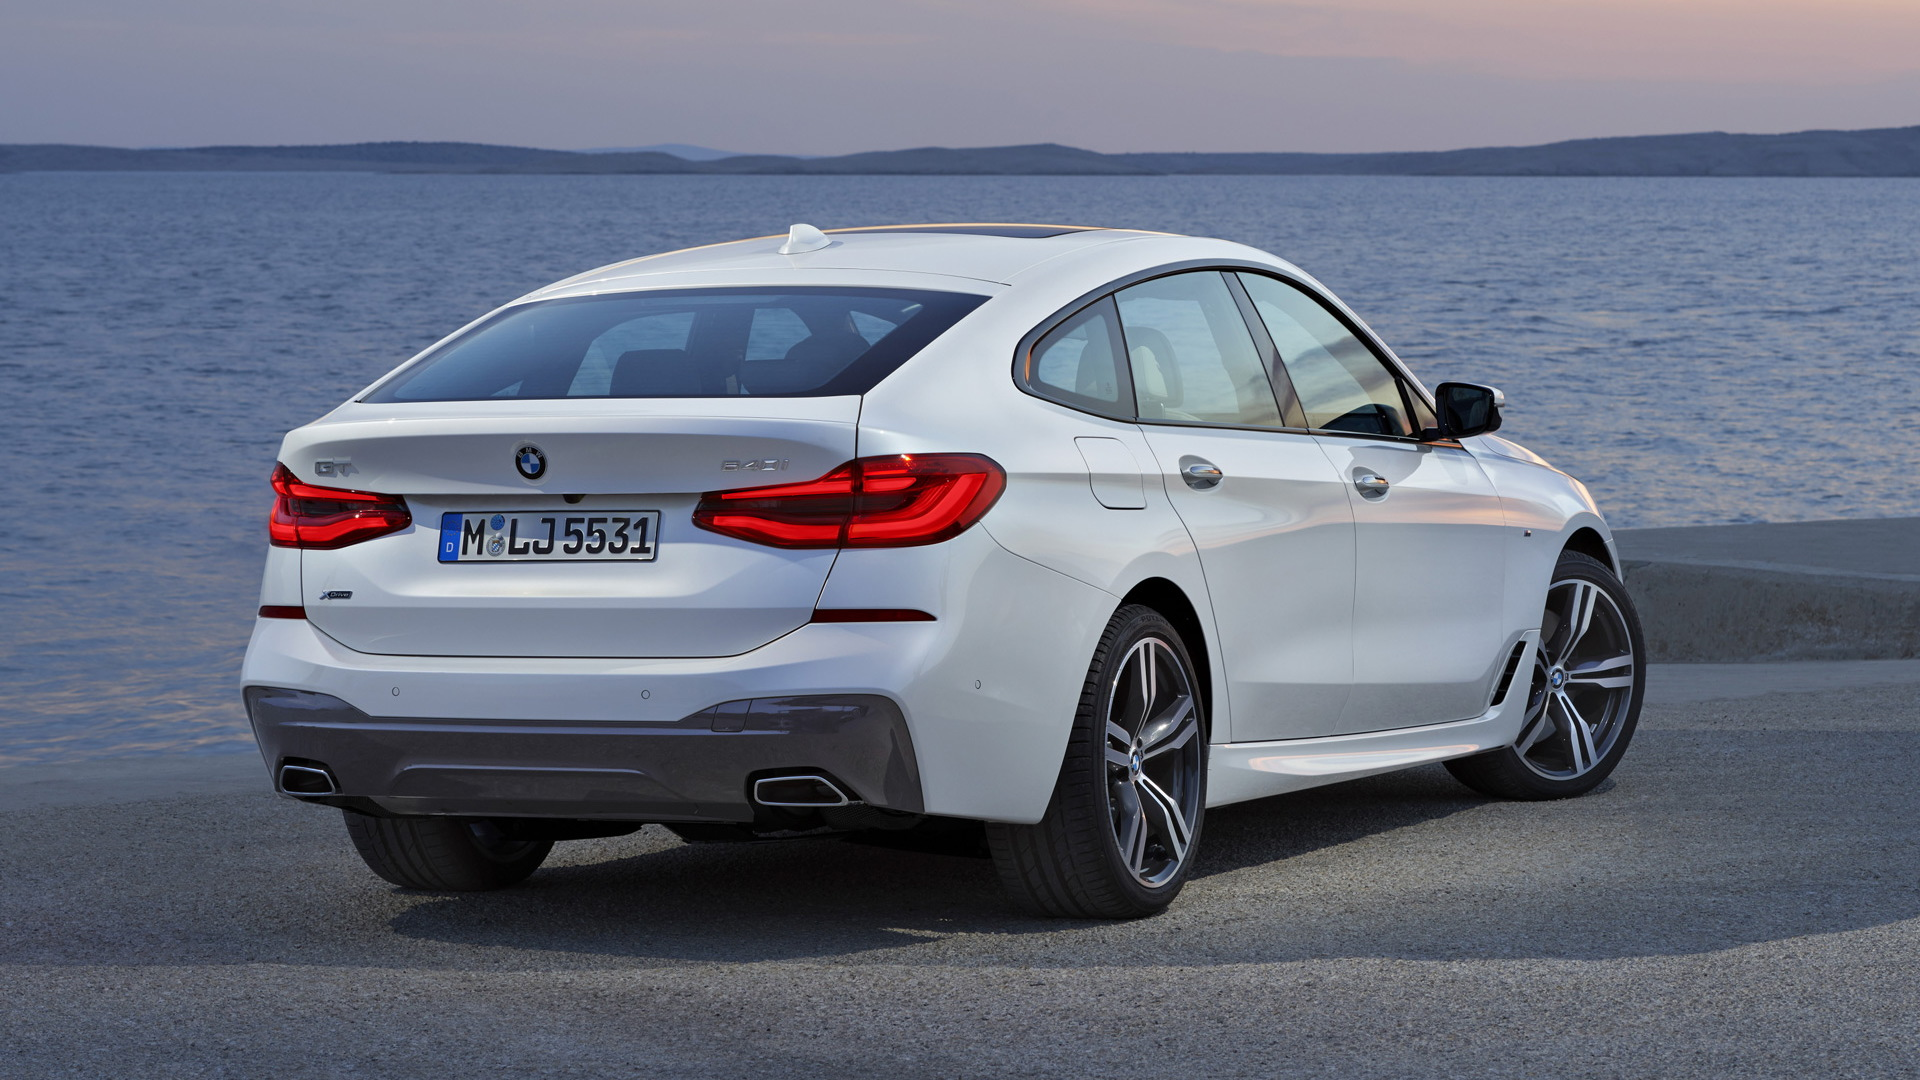 2018 Bmw 6 Series Gt Revealed Priced From 70 695